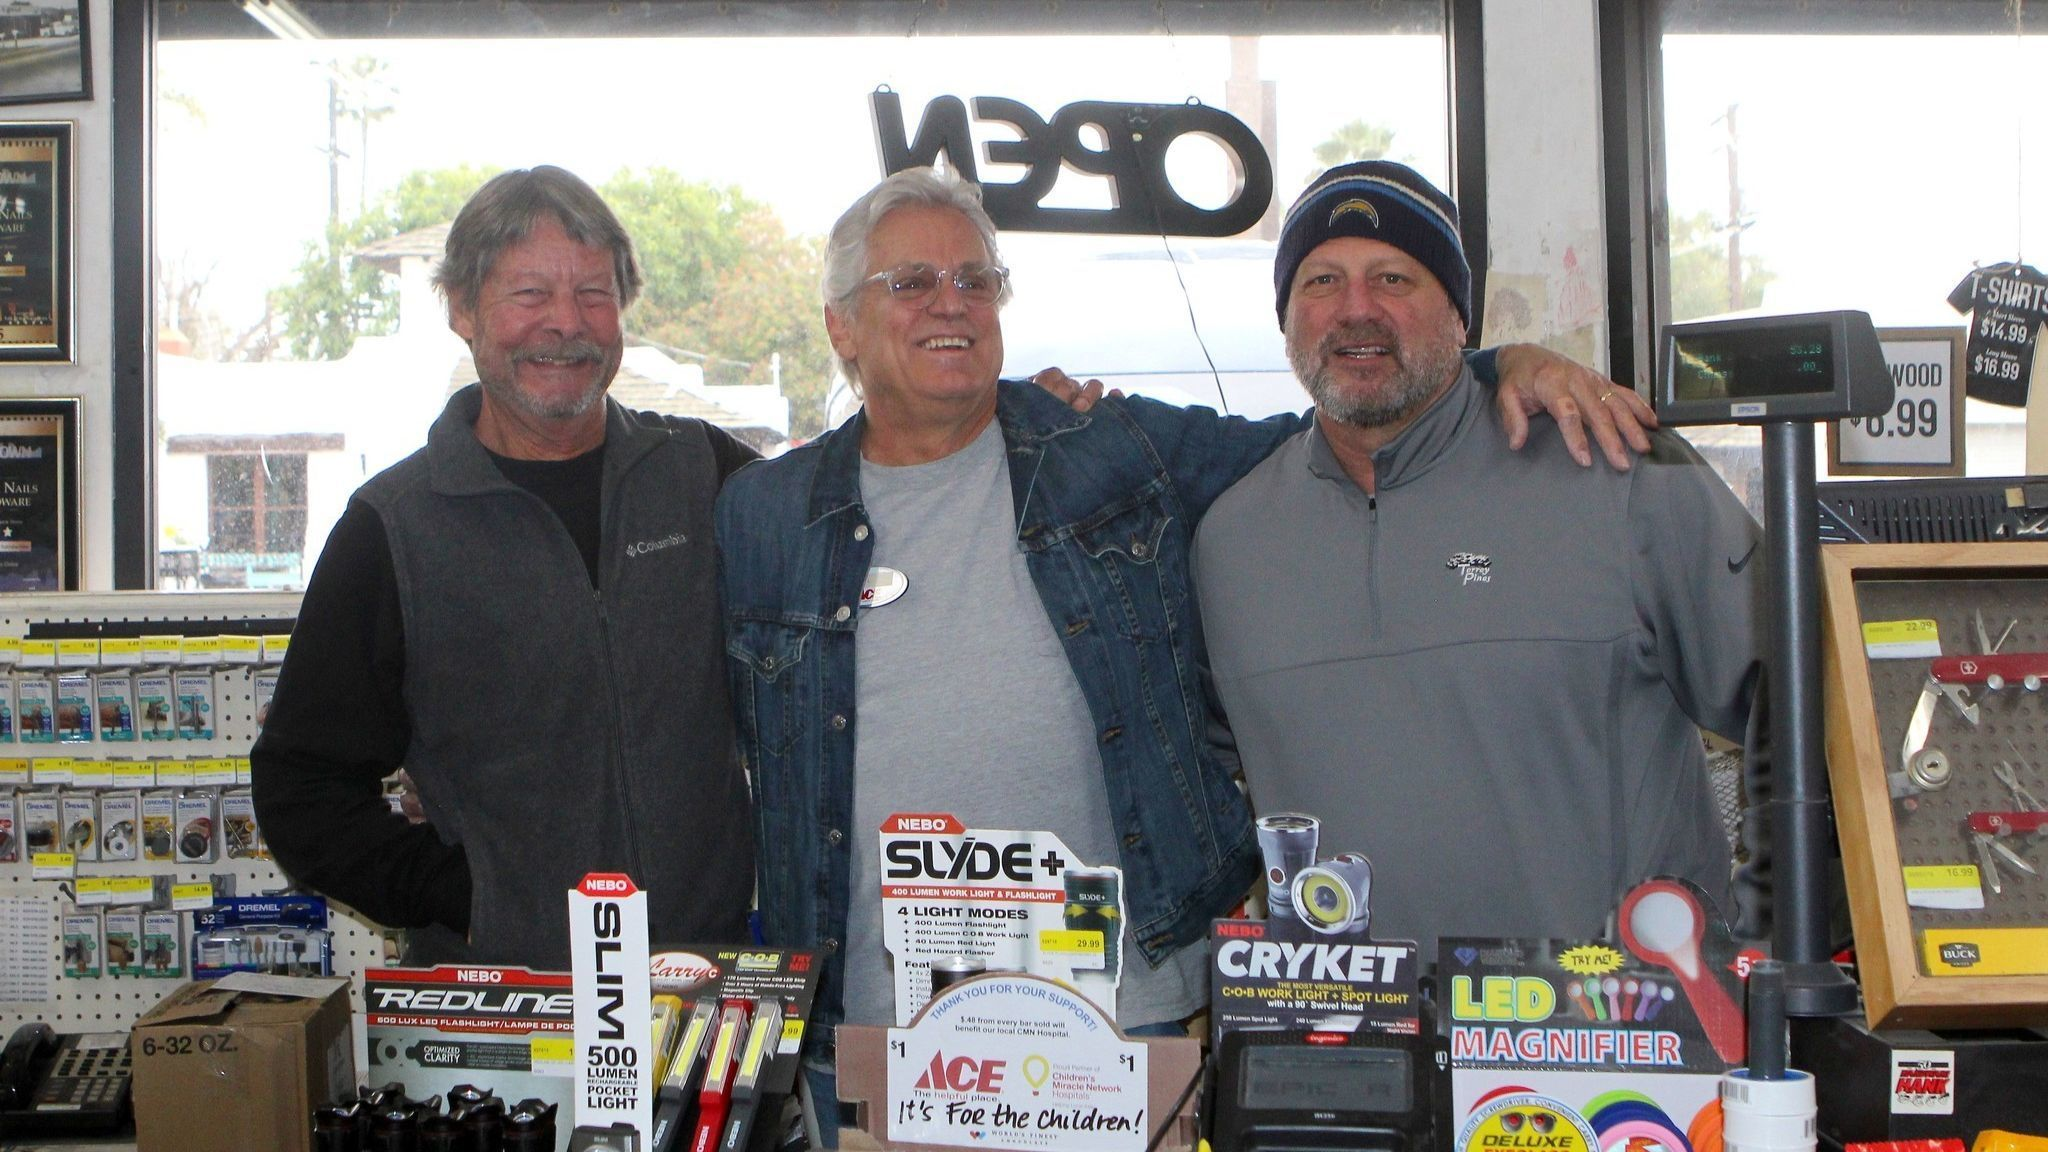 Hammer & Nails owner Bill Meanley and manager Ron Roman say they love working with Walby.